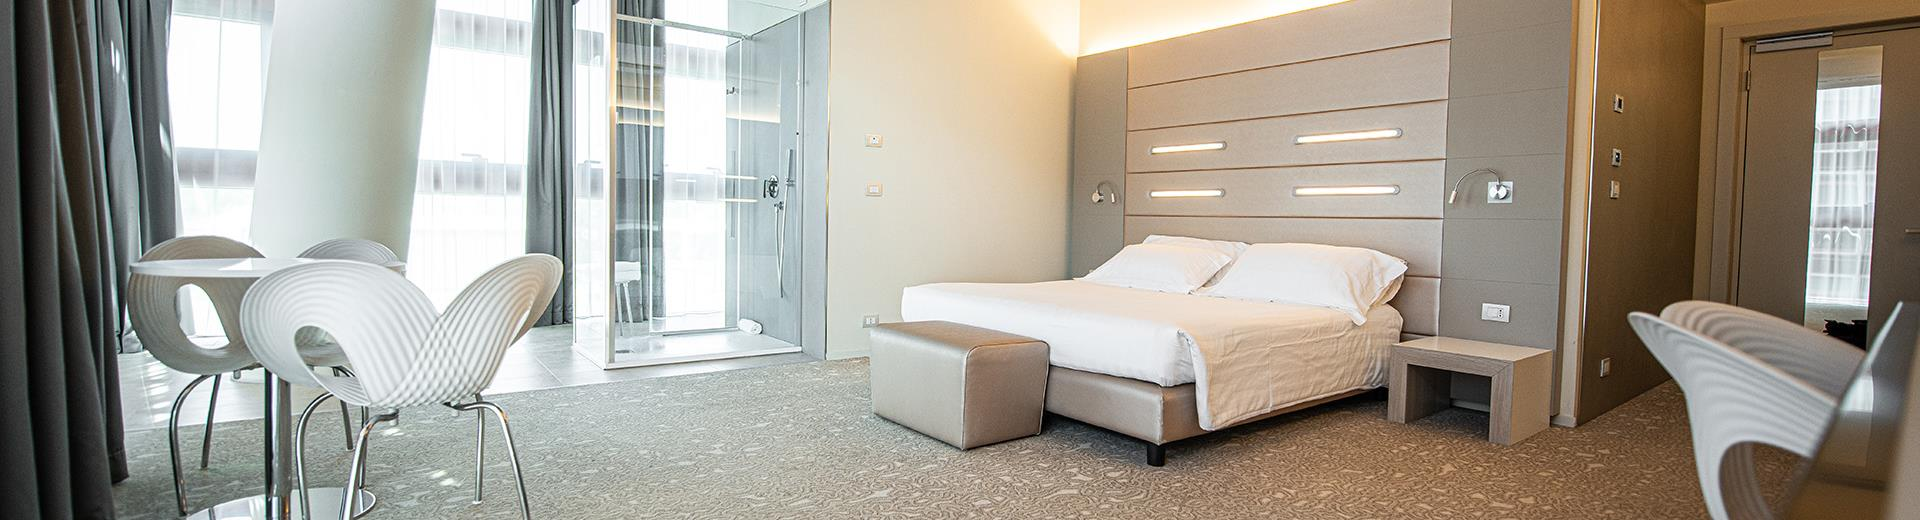 Ampiezza, comfort e design nelle camre superior del BW Plus Net Tower Hotel